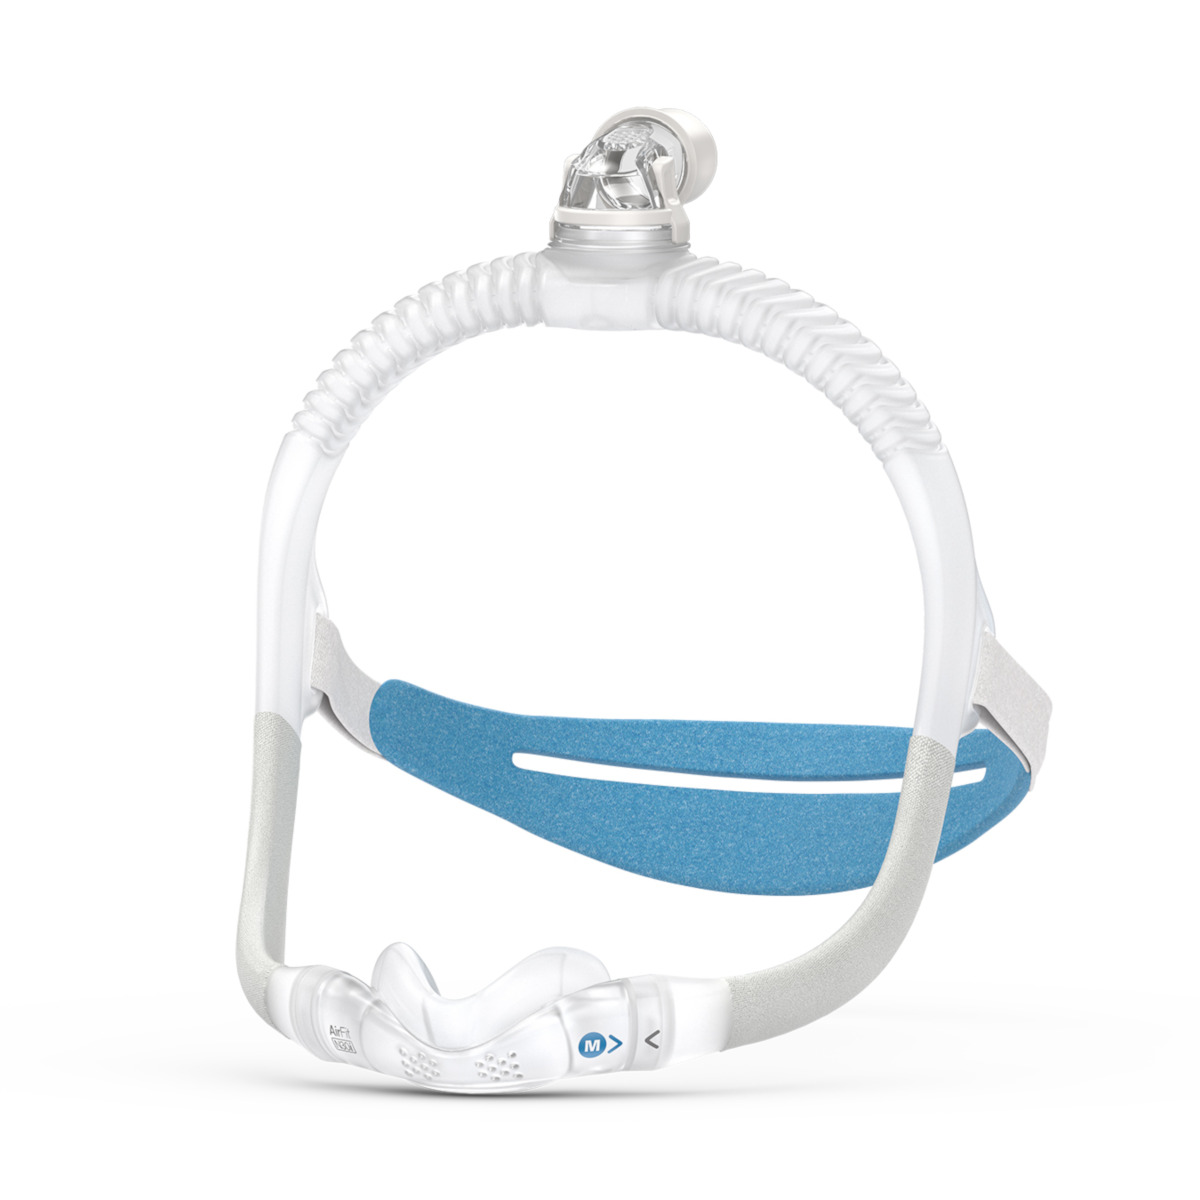 ResMed - Cheapest CPAP Machines & Supplies | Full Selection of CPAP